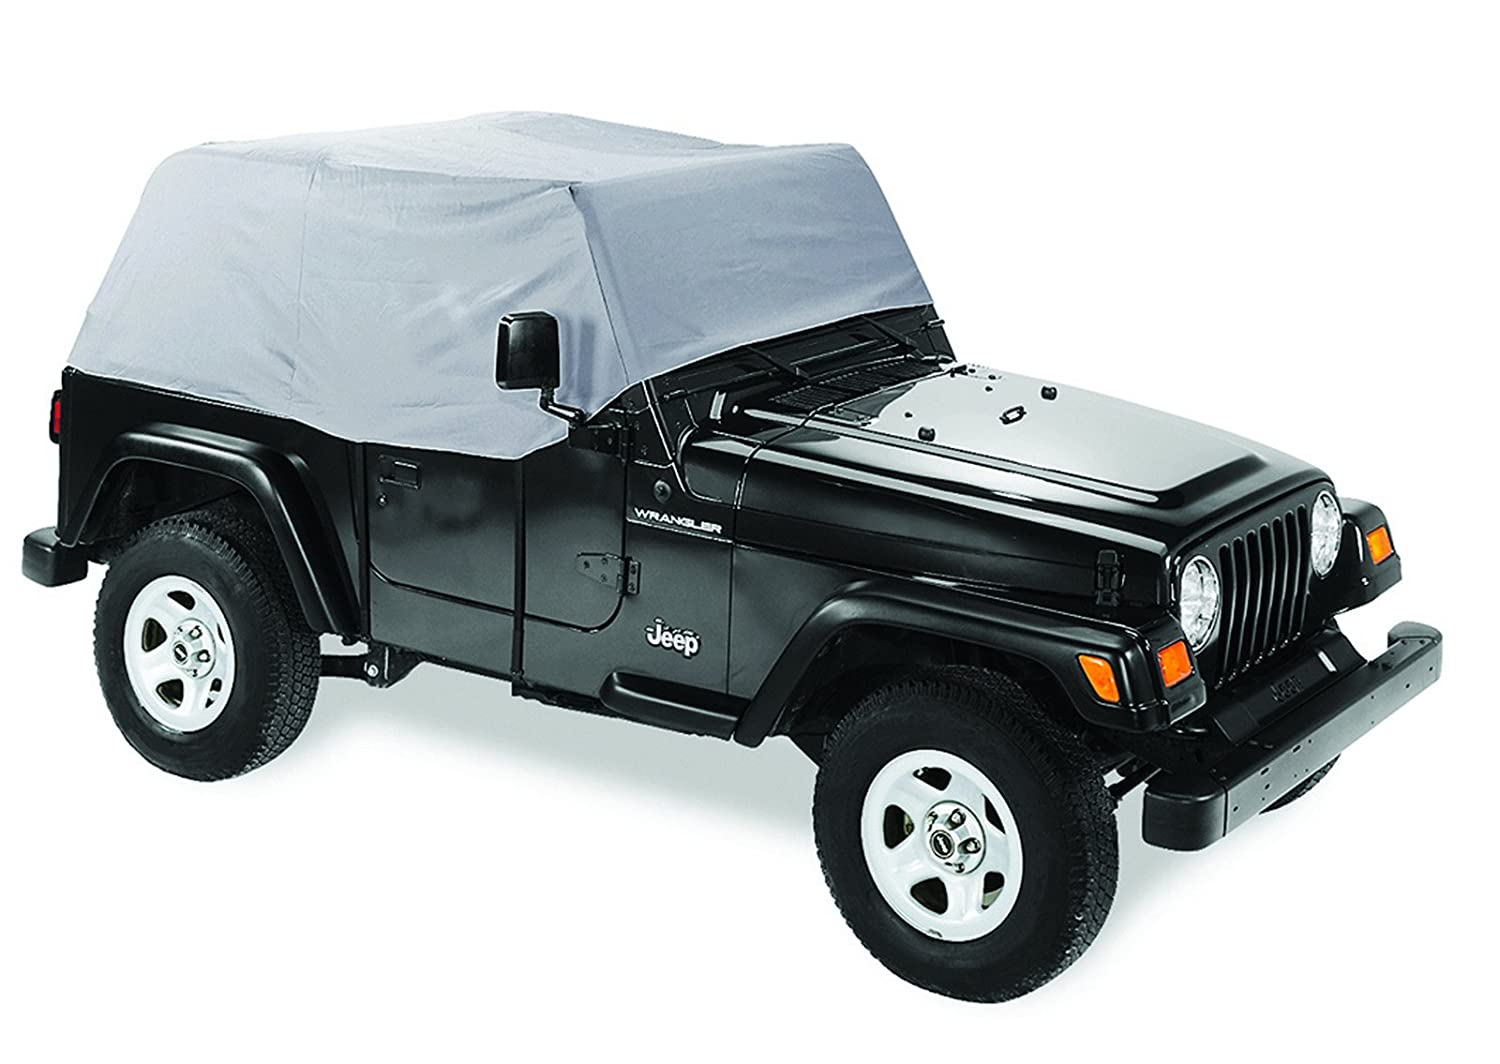 Pavement Ends by Bestop 41728-09 Charcoal Canopy Cover for 1992-1995 Wrangler YJ